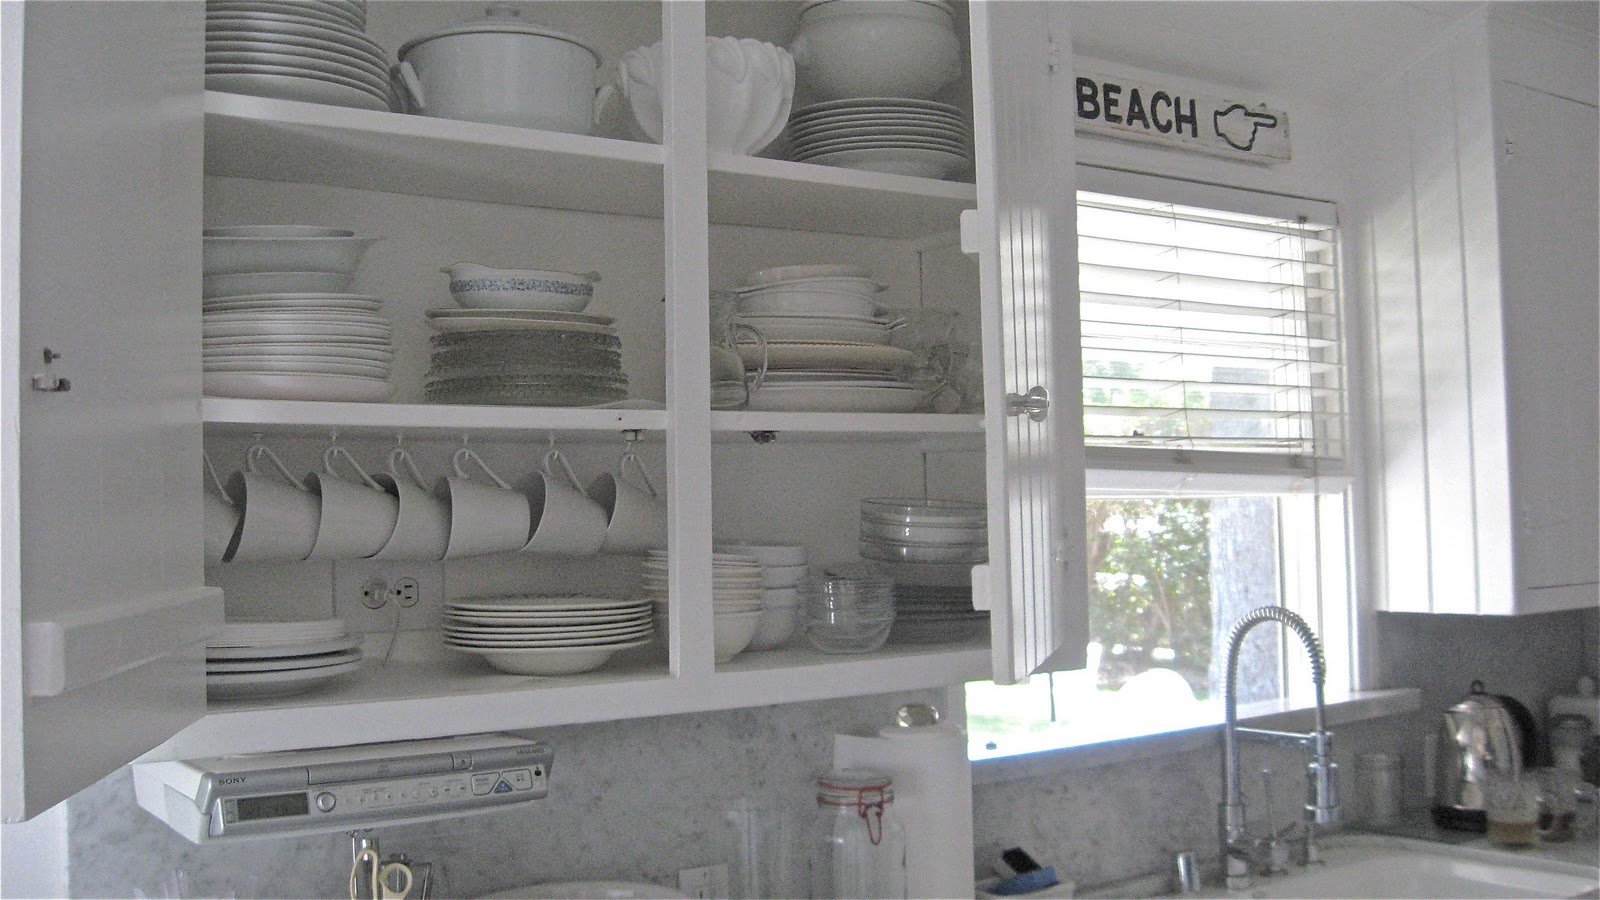 Chandeliers at Beach House 27: Beach House Kitchen & PEACE on the